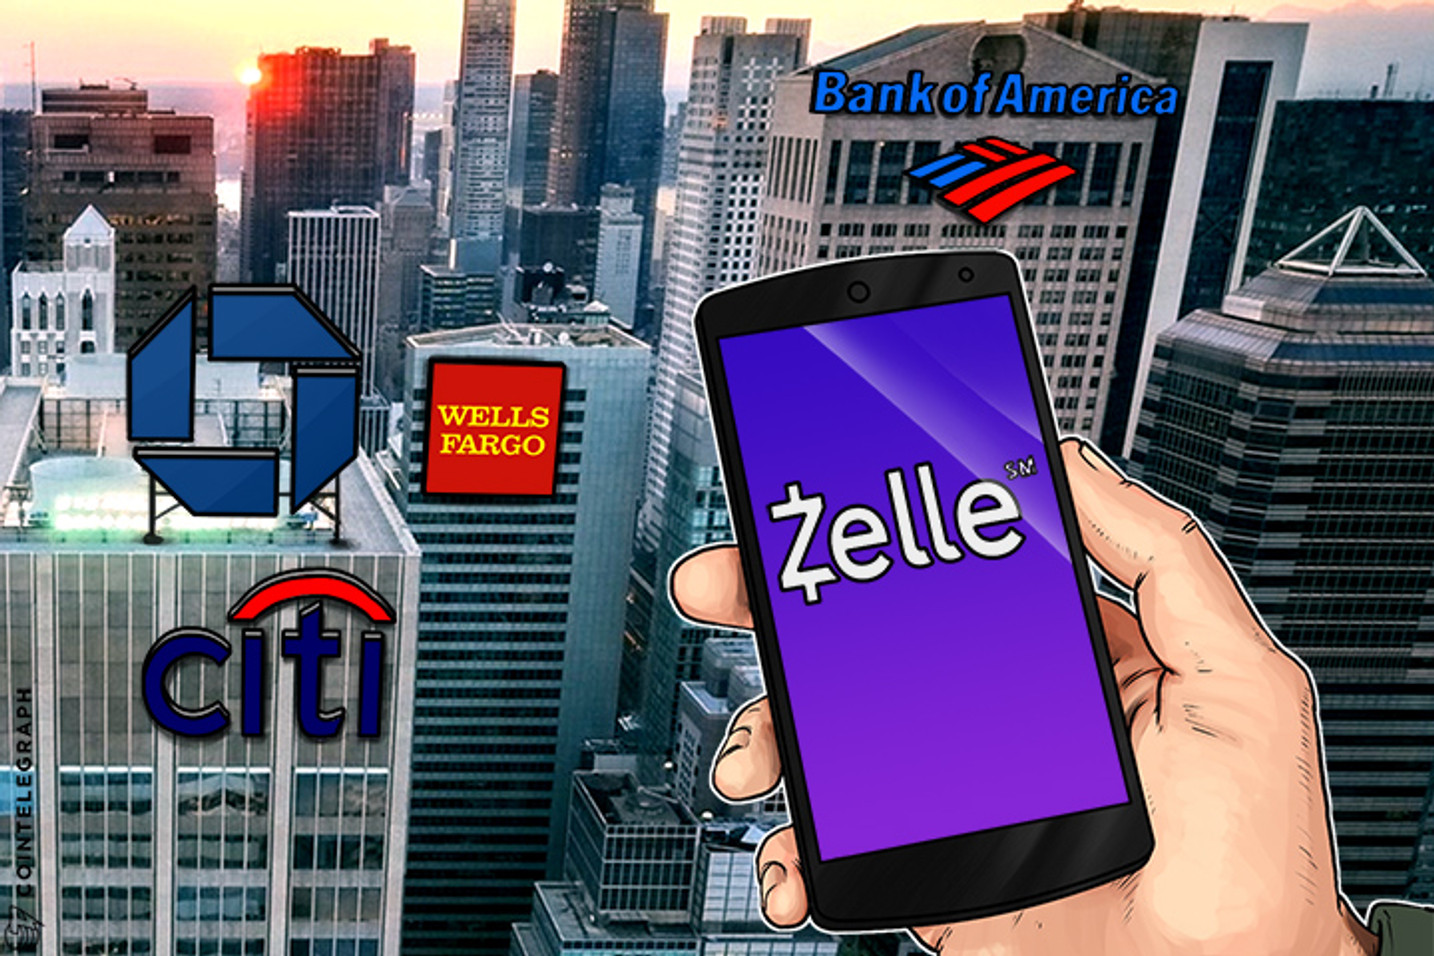 Top US Banks That Experiment With Blockchain To Release Money Transfer App in 2017